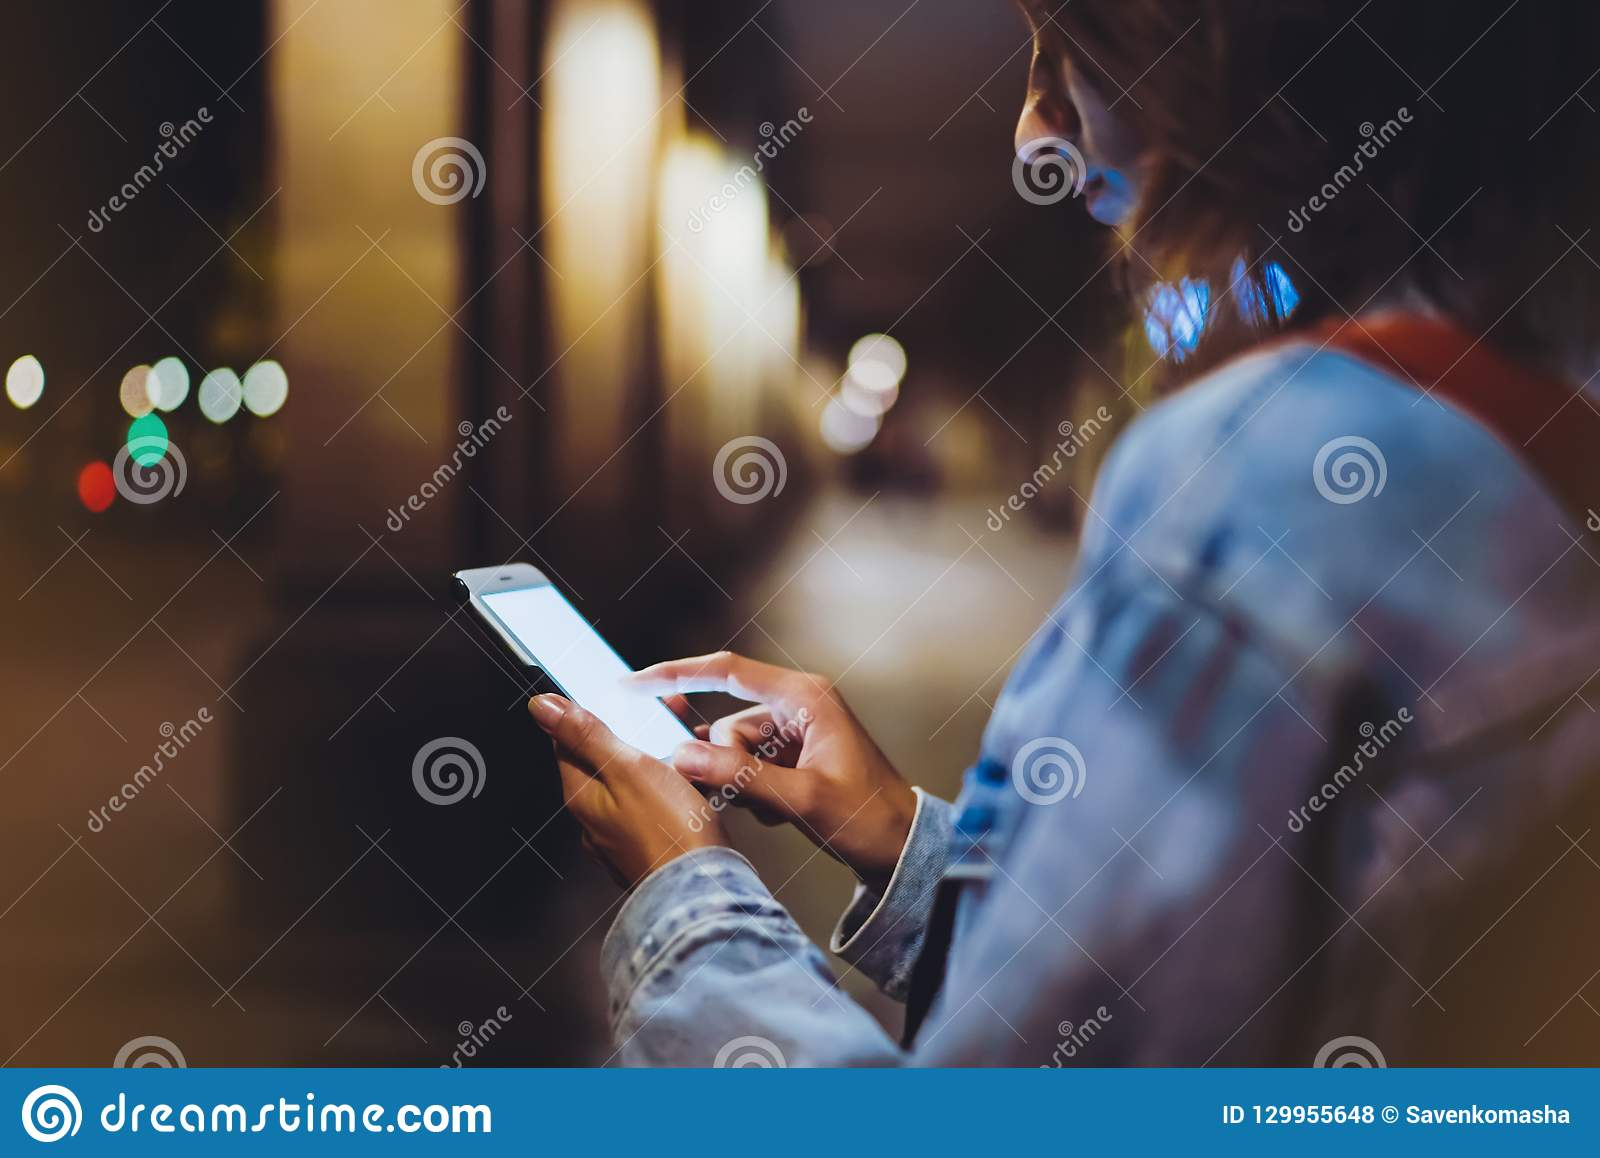 Blogger hipster using in hands gadget mobile phone, woman with backpack pointing finger on blank screen smartphone on background